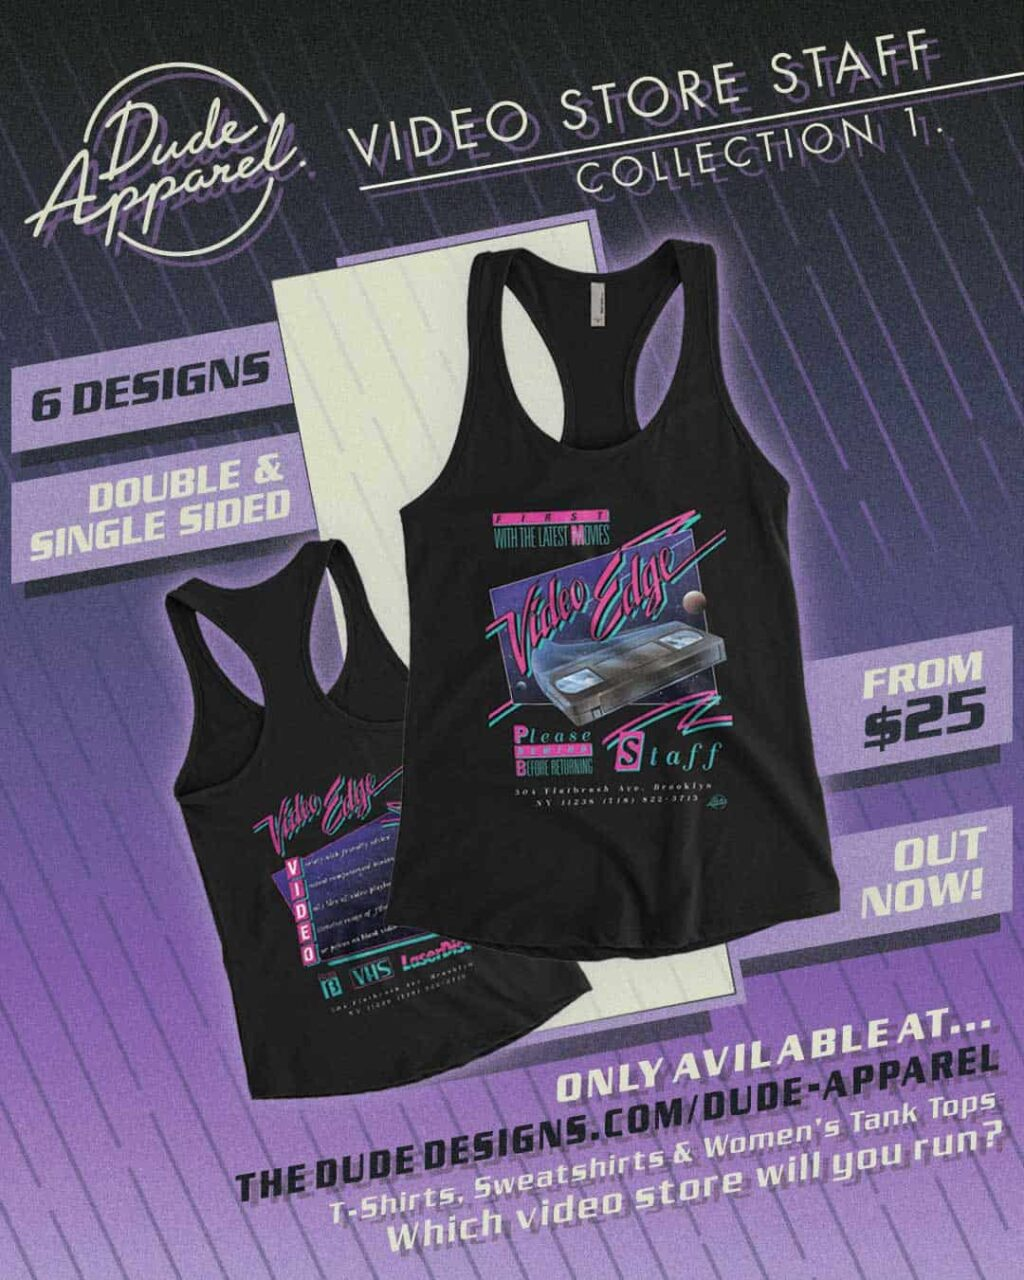 Dude Apparel VHS Video store 3 1024x1280 - DUDE APPAREL Launches the Perfect Retro Gear for Nostalgic Film Fans